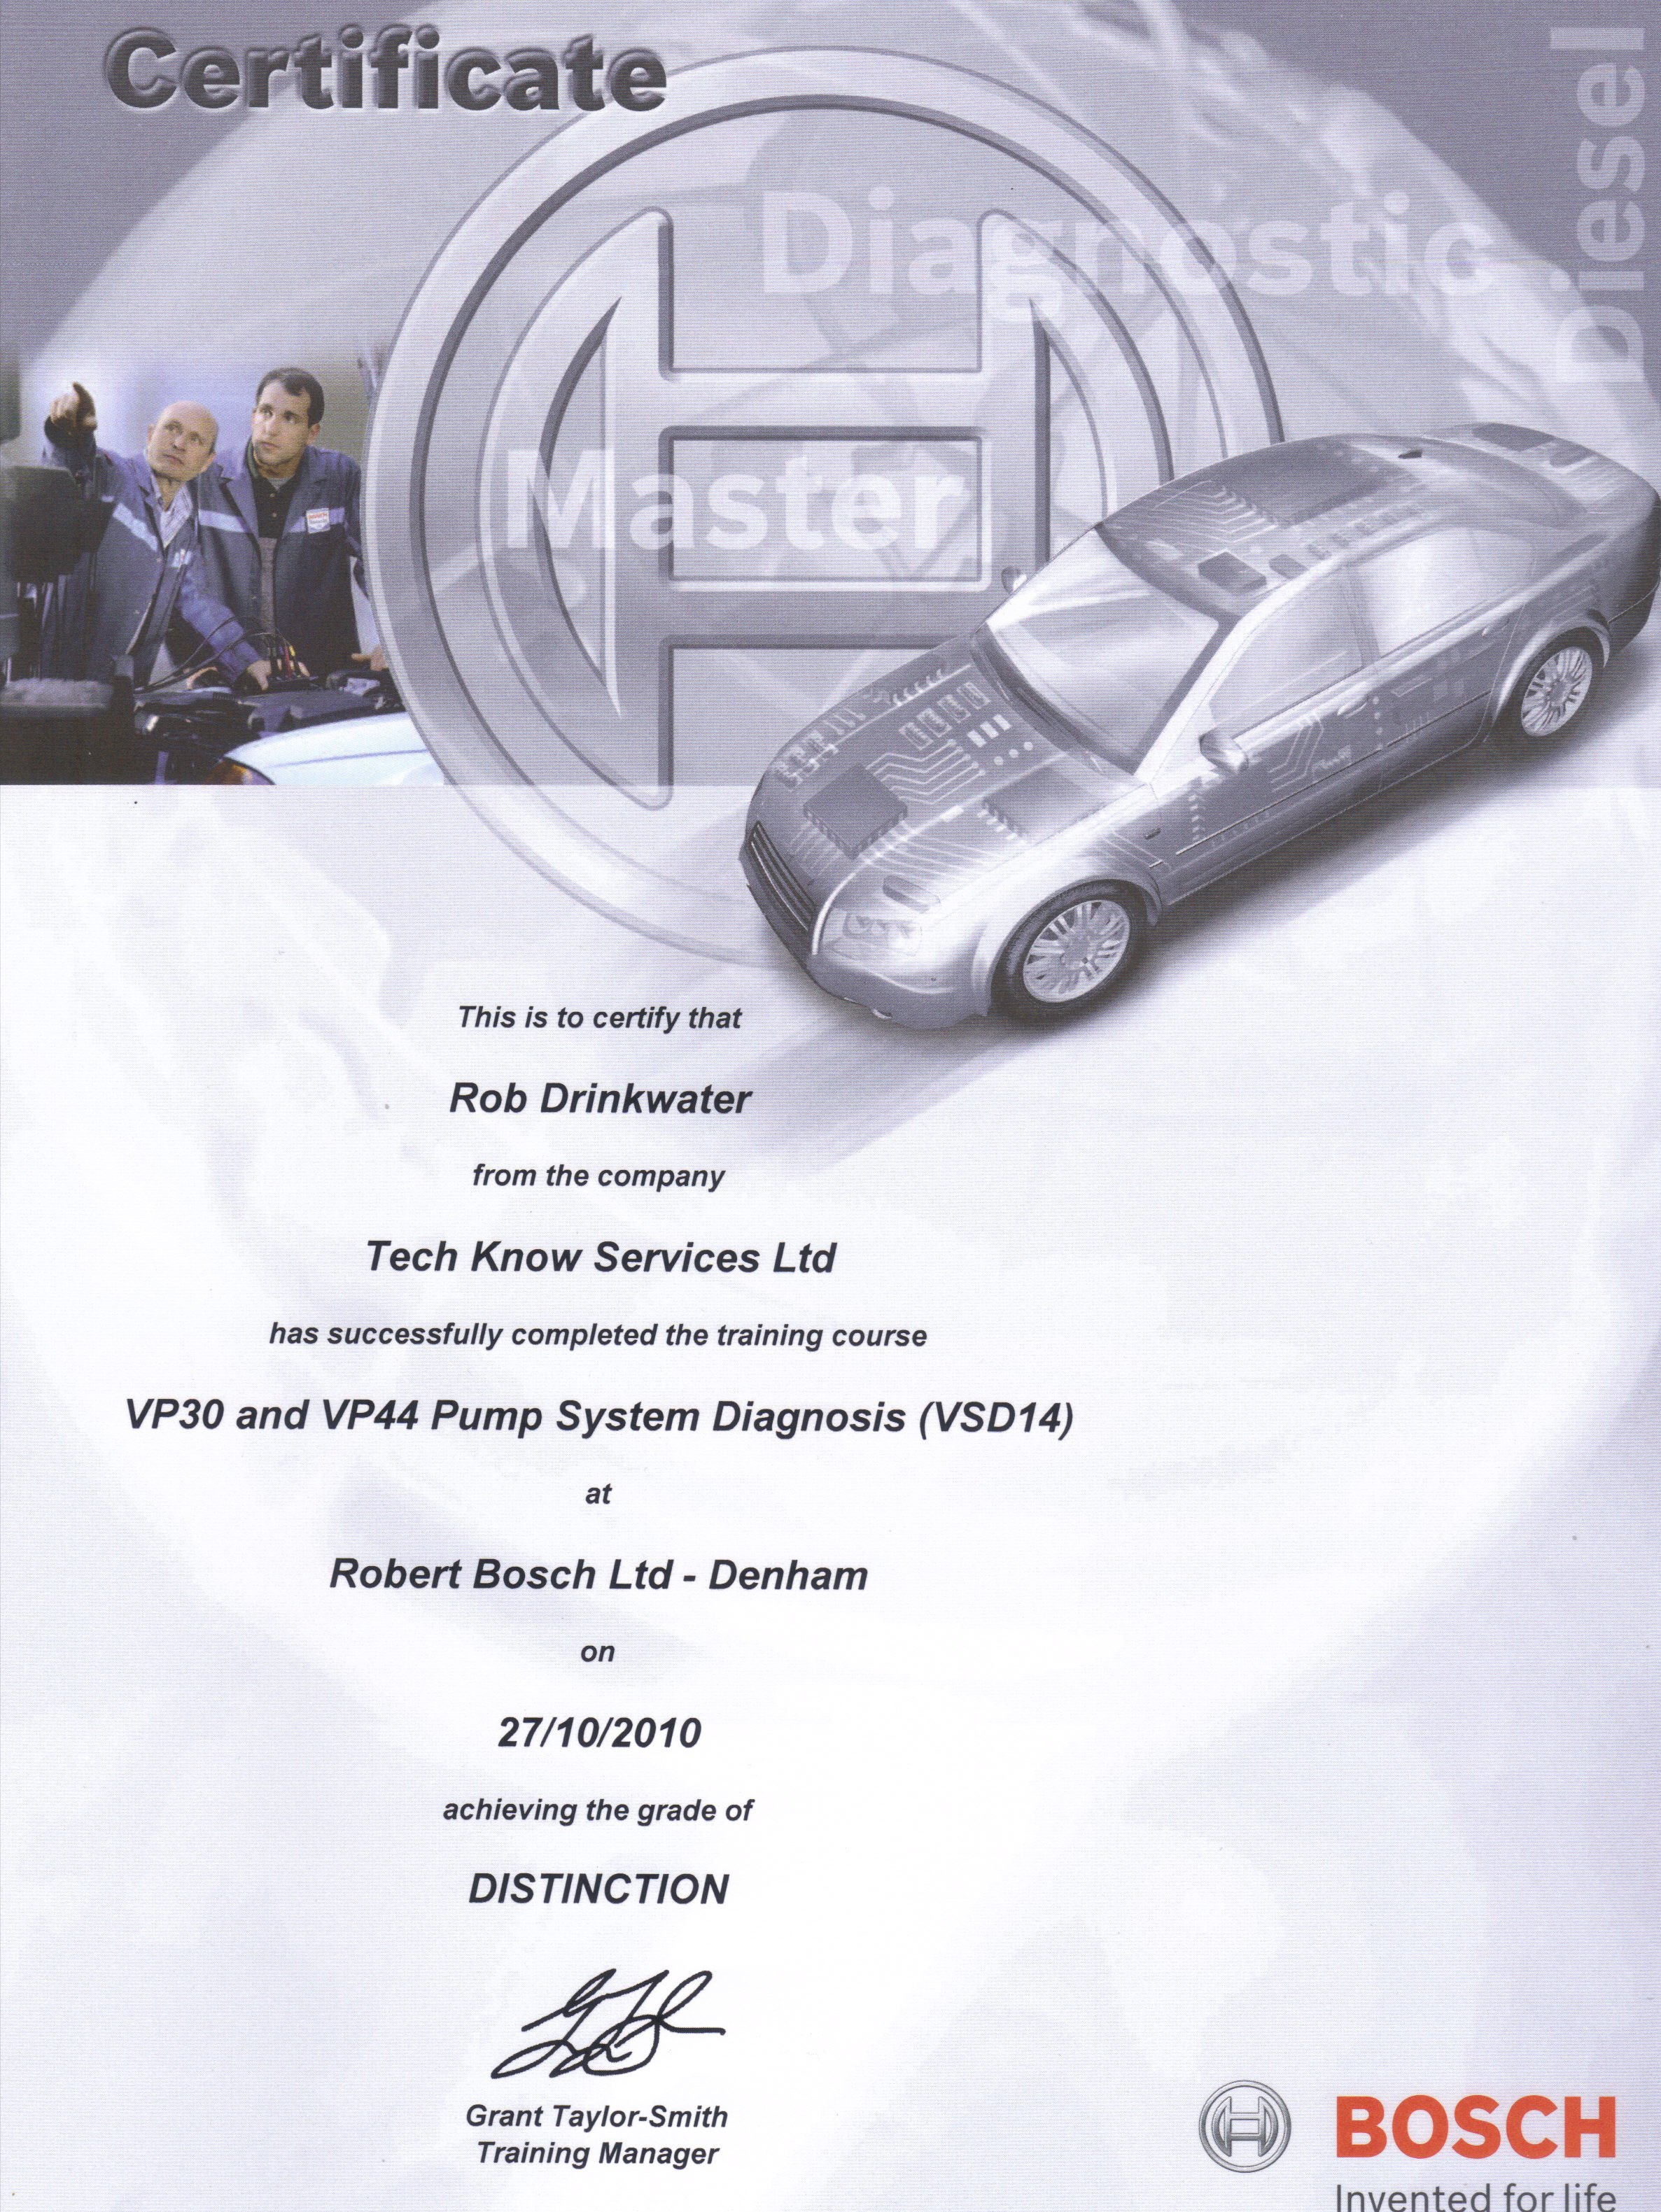 VSD14 VP30 & VP44 Pump System Diagnosis Course Certificate 2010